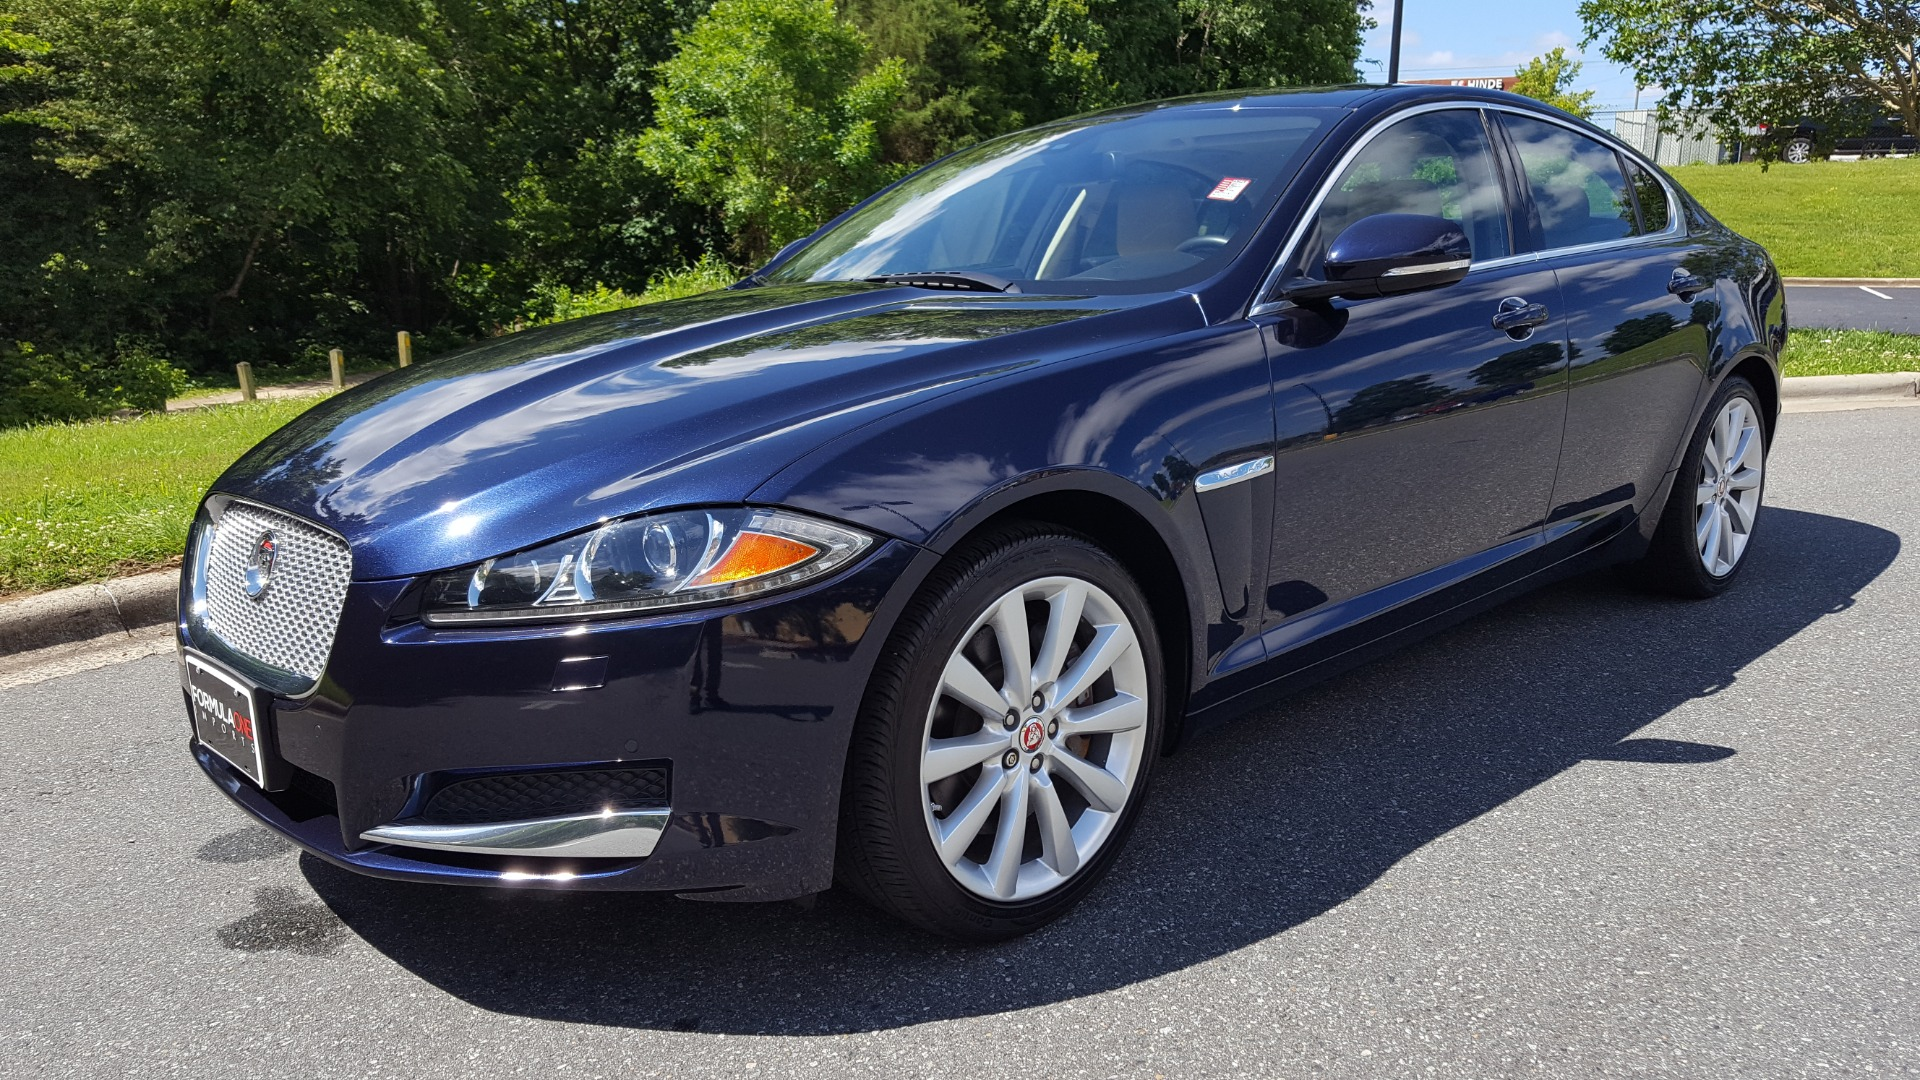 Used 2014 Jaguar XF V6 SC AWD PREMIUM / NAV / COLD CLIMATE PKG / VISION / REARVIEW for sale $18,995 at Formula Imports in Charlotte NC 28227 1